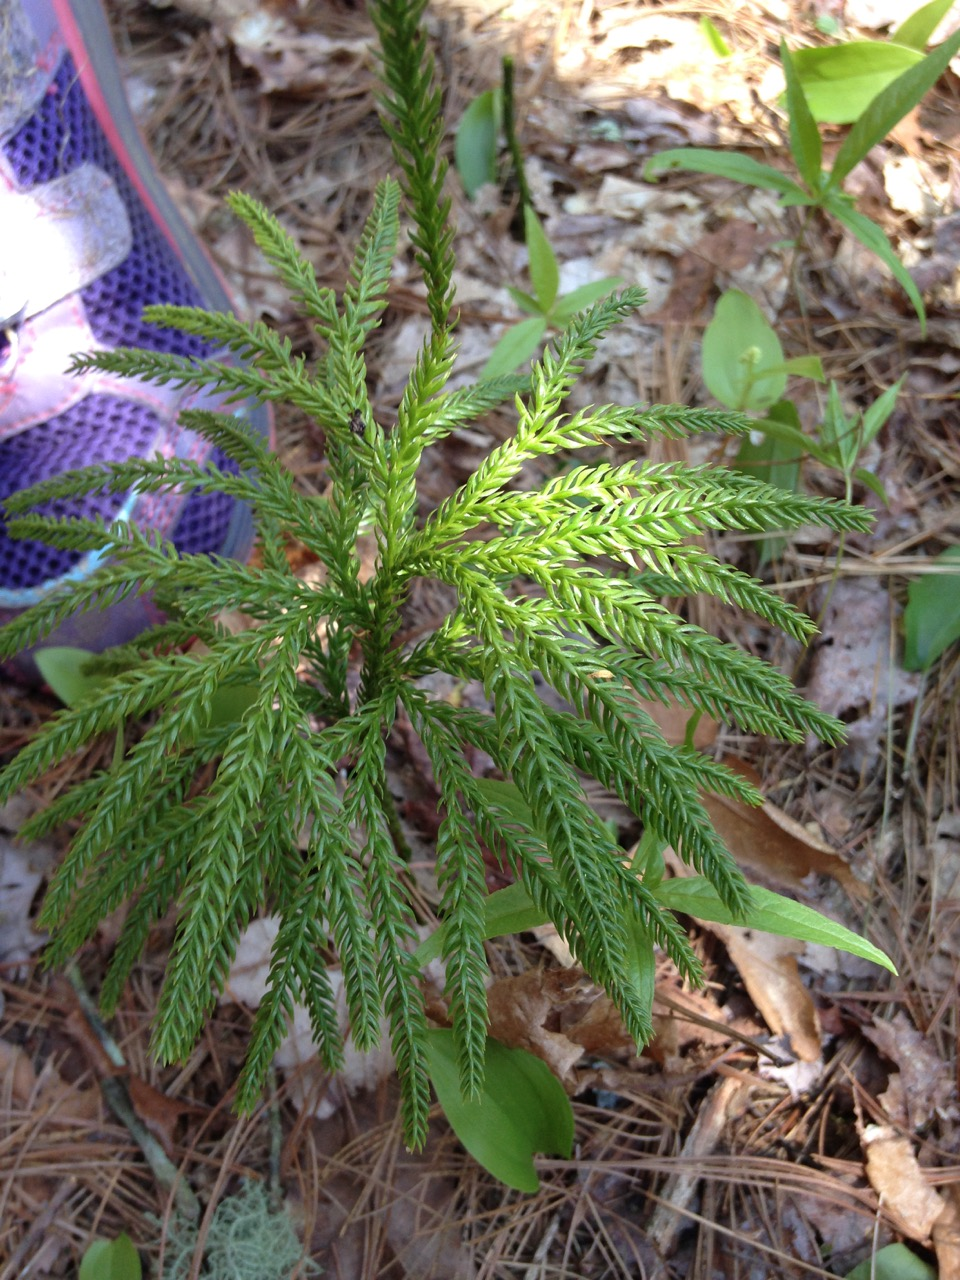 Princess pine, which is actually a club moss. Who knew.